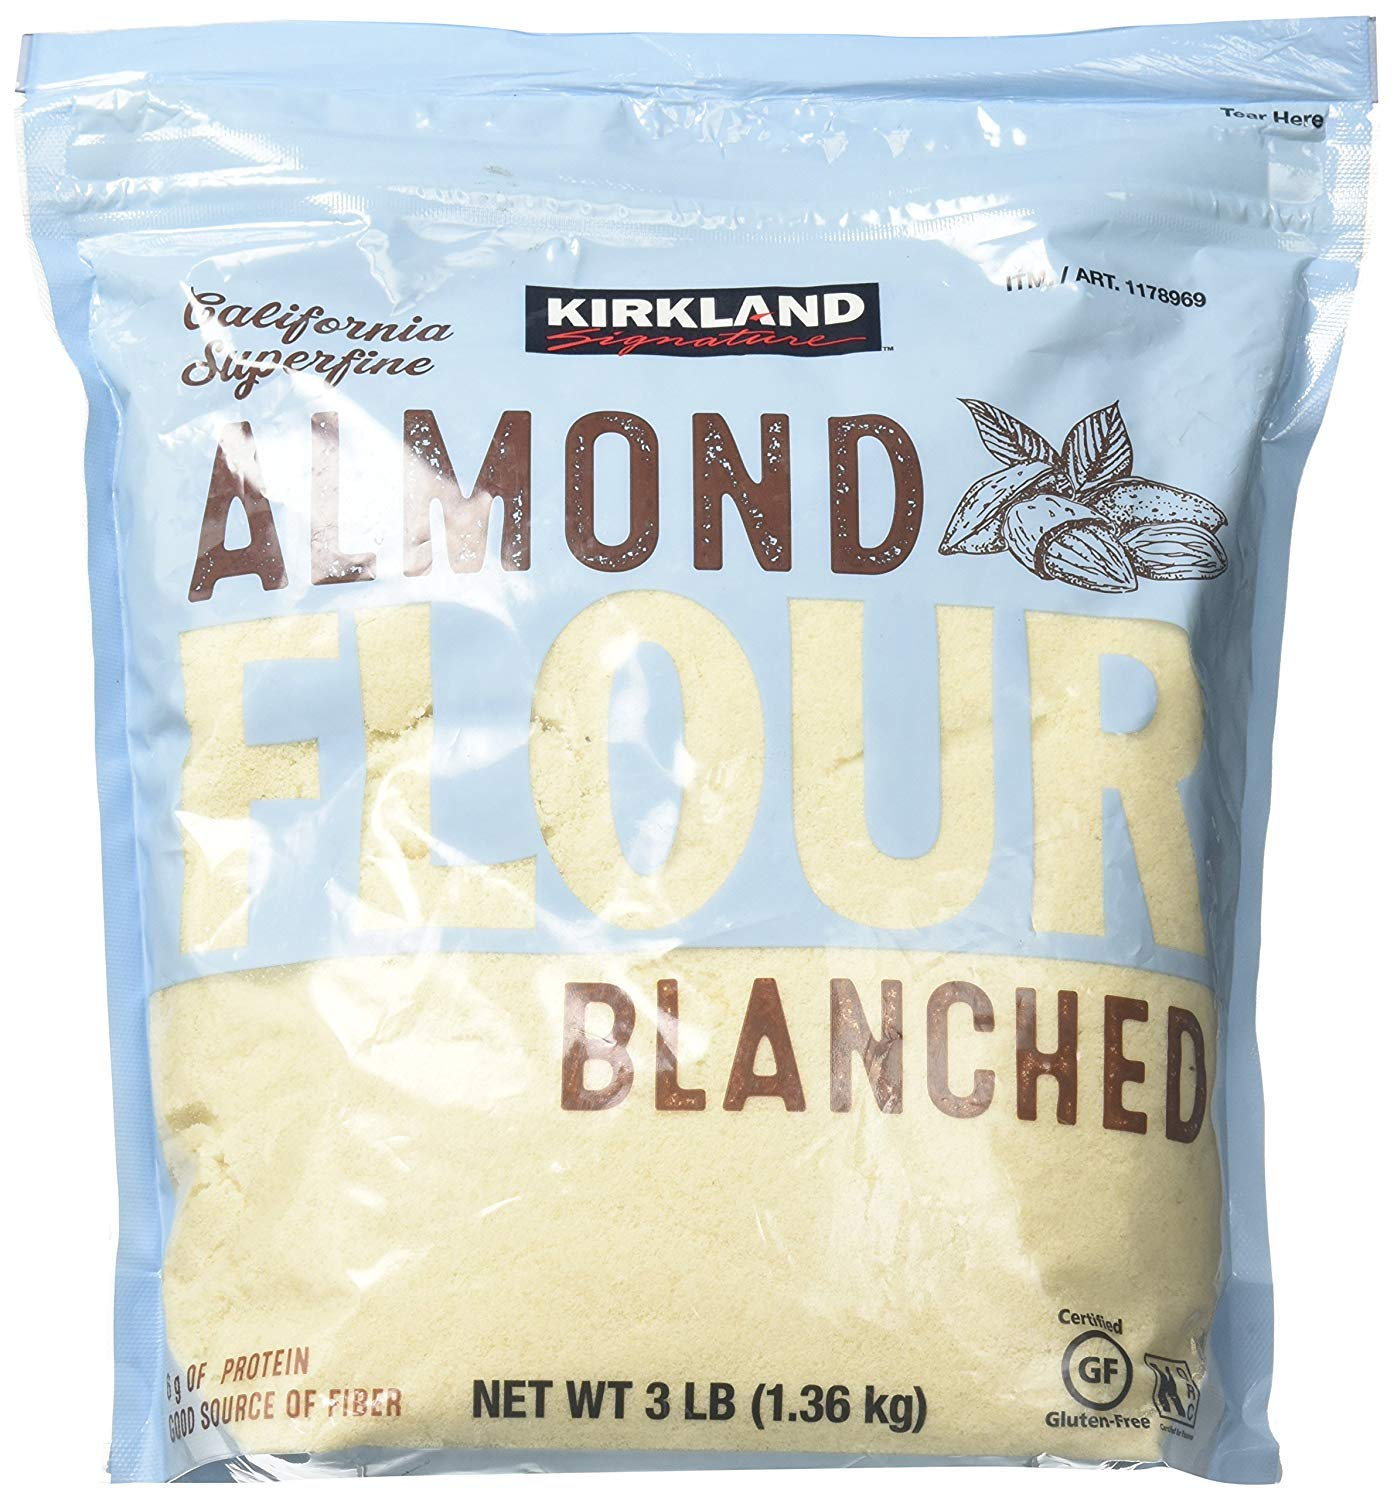 Kirkland Signature Almond Flour Blanched California Superfine, 3 Pounds - 3 Pack